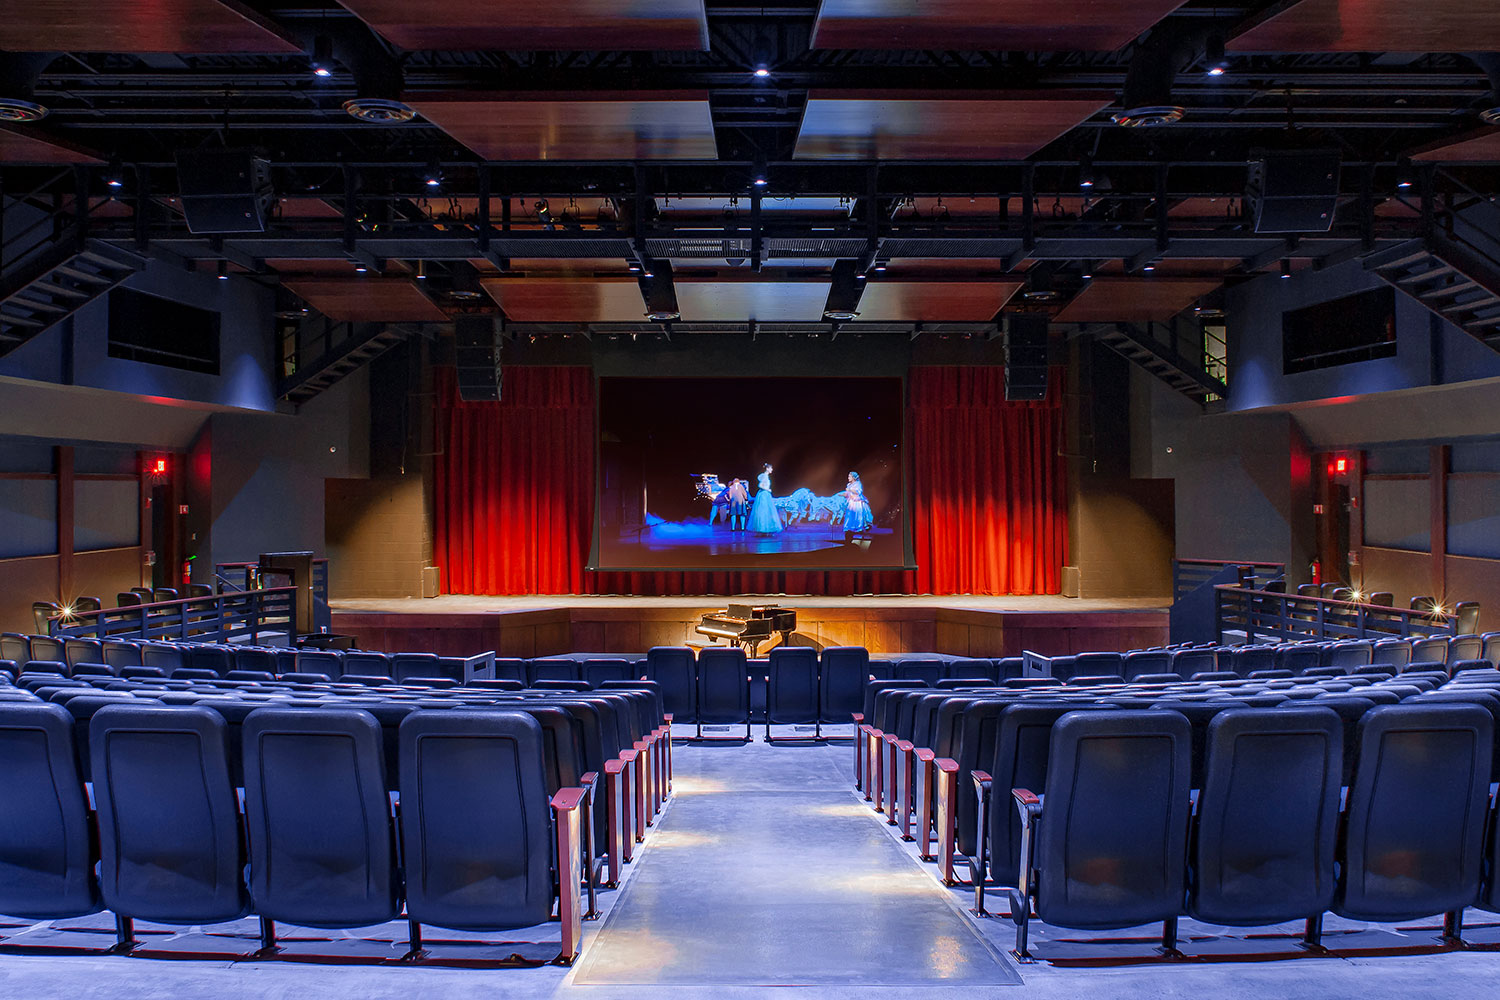 Goshen High School new auditorium in Goshen, NY. WSDG was retained to acoustically measure the space and collaborate on the redesign with LAN Associates to optimize the space for these needs while still retaining the aesthetic goals of the redesign. Front View.